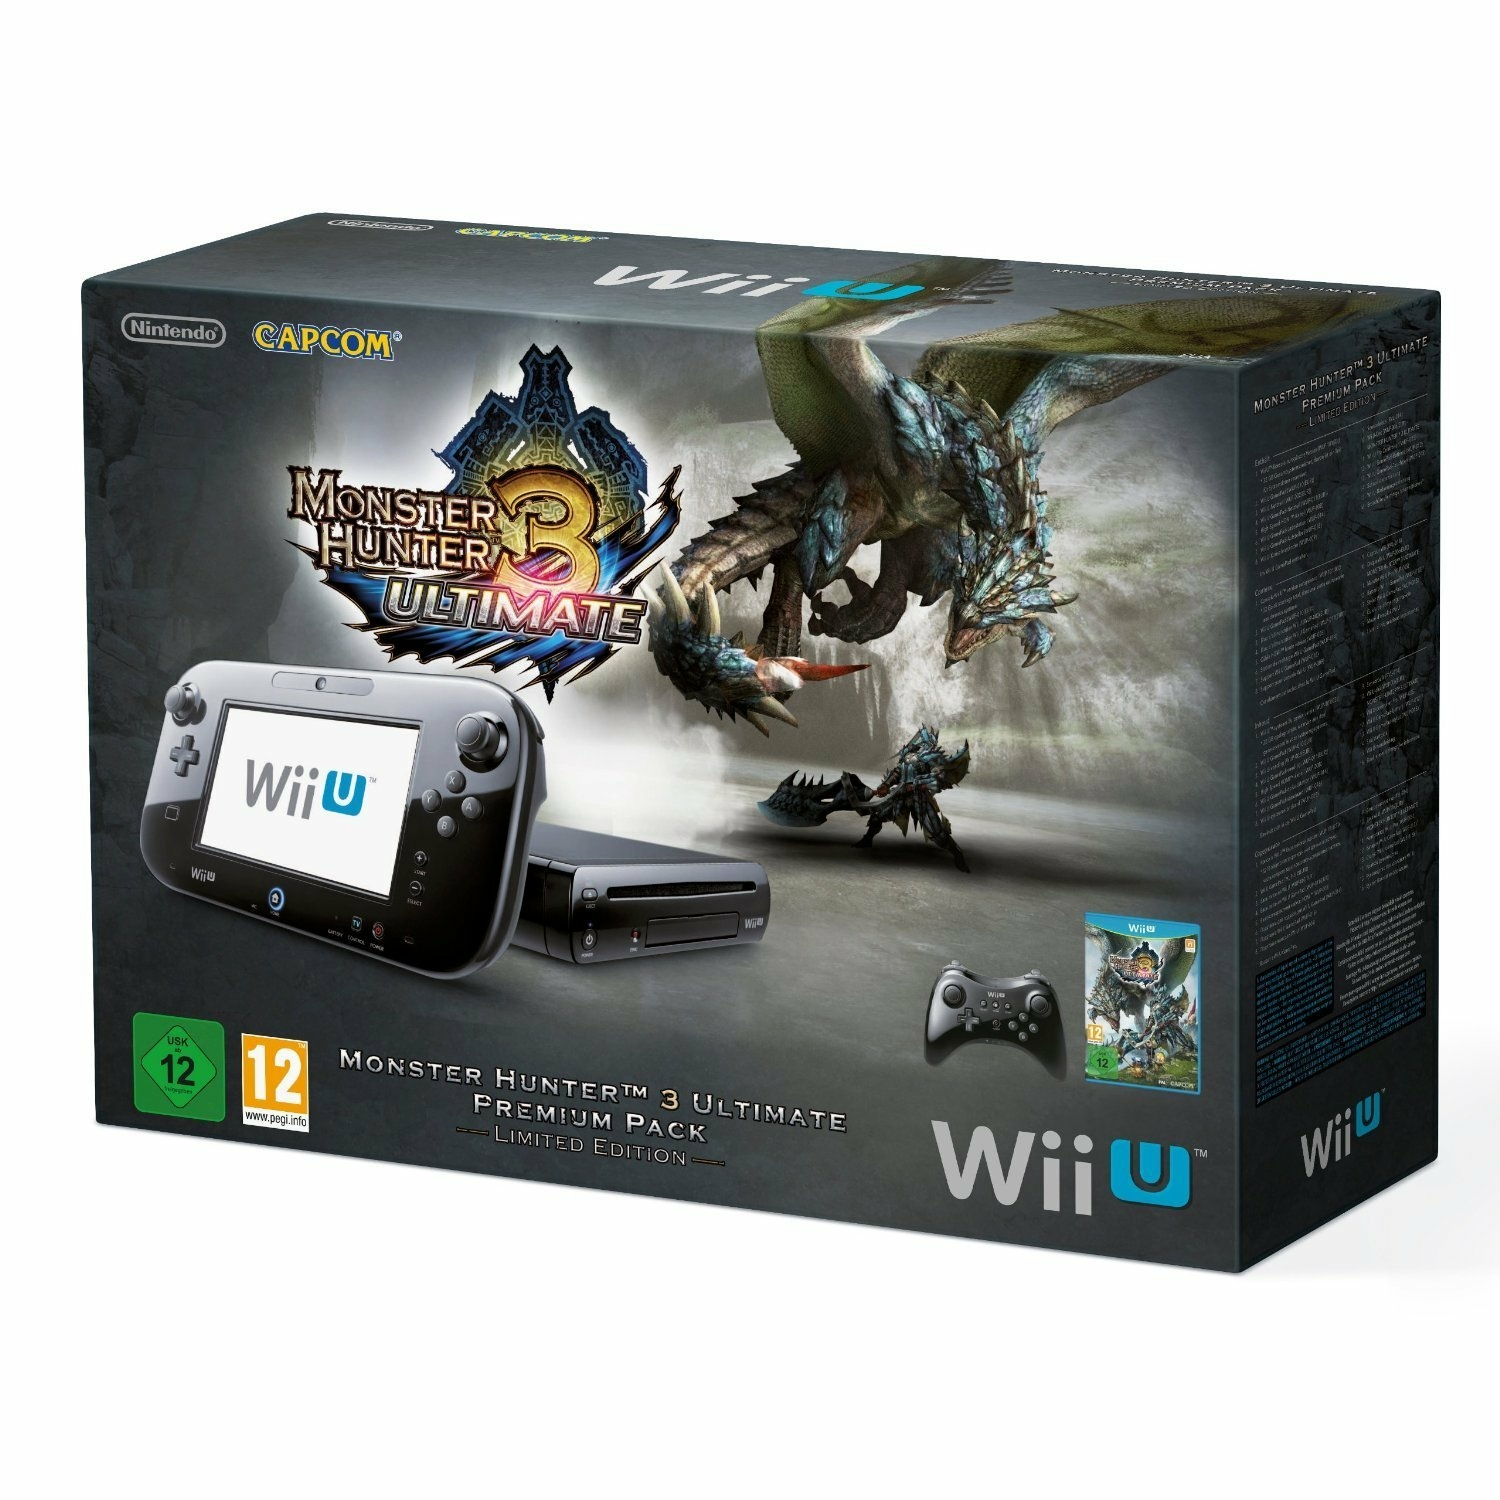 what is the resolution of the wii u gamepad